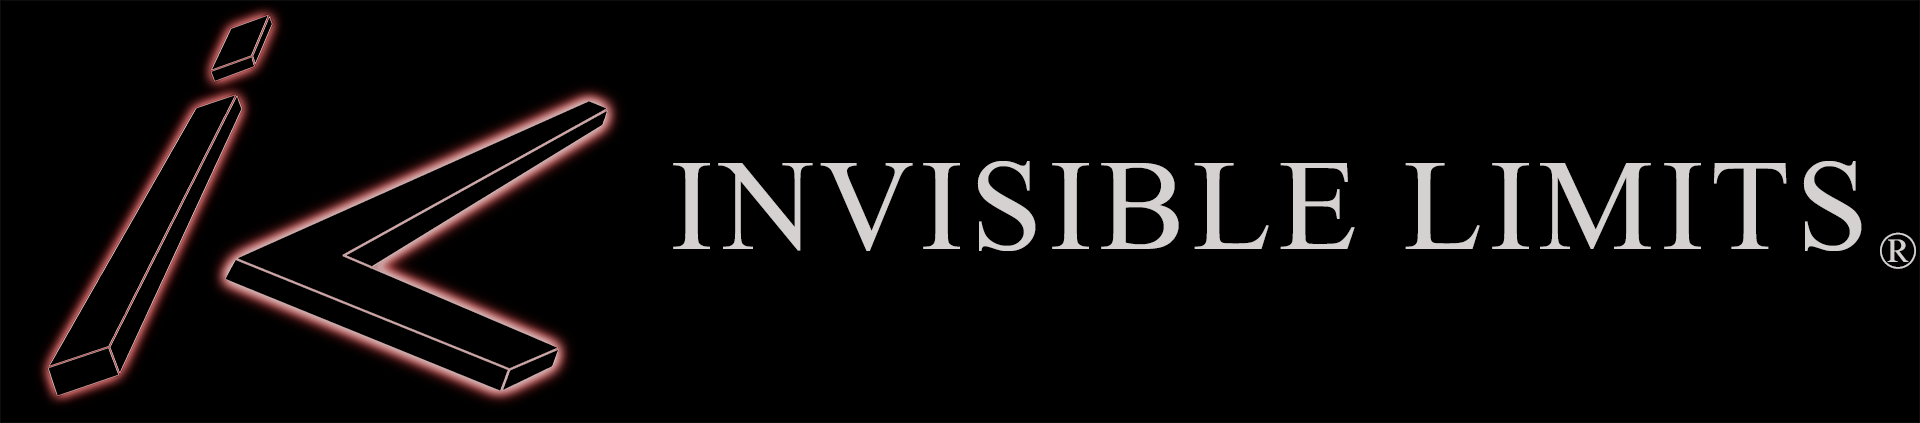 Invisible Limits